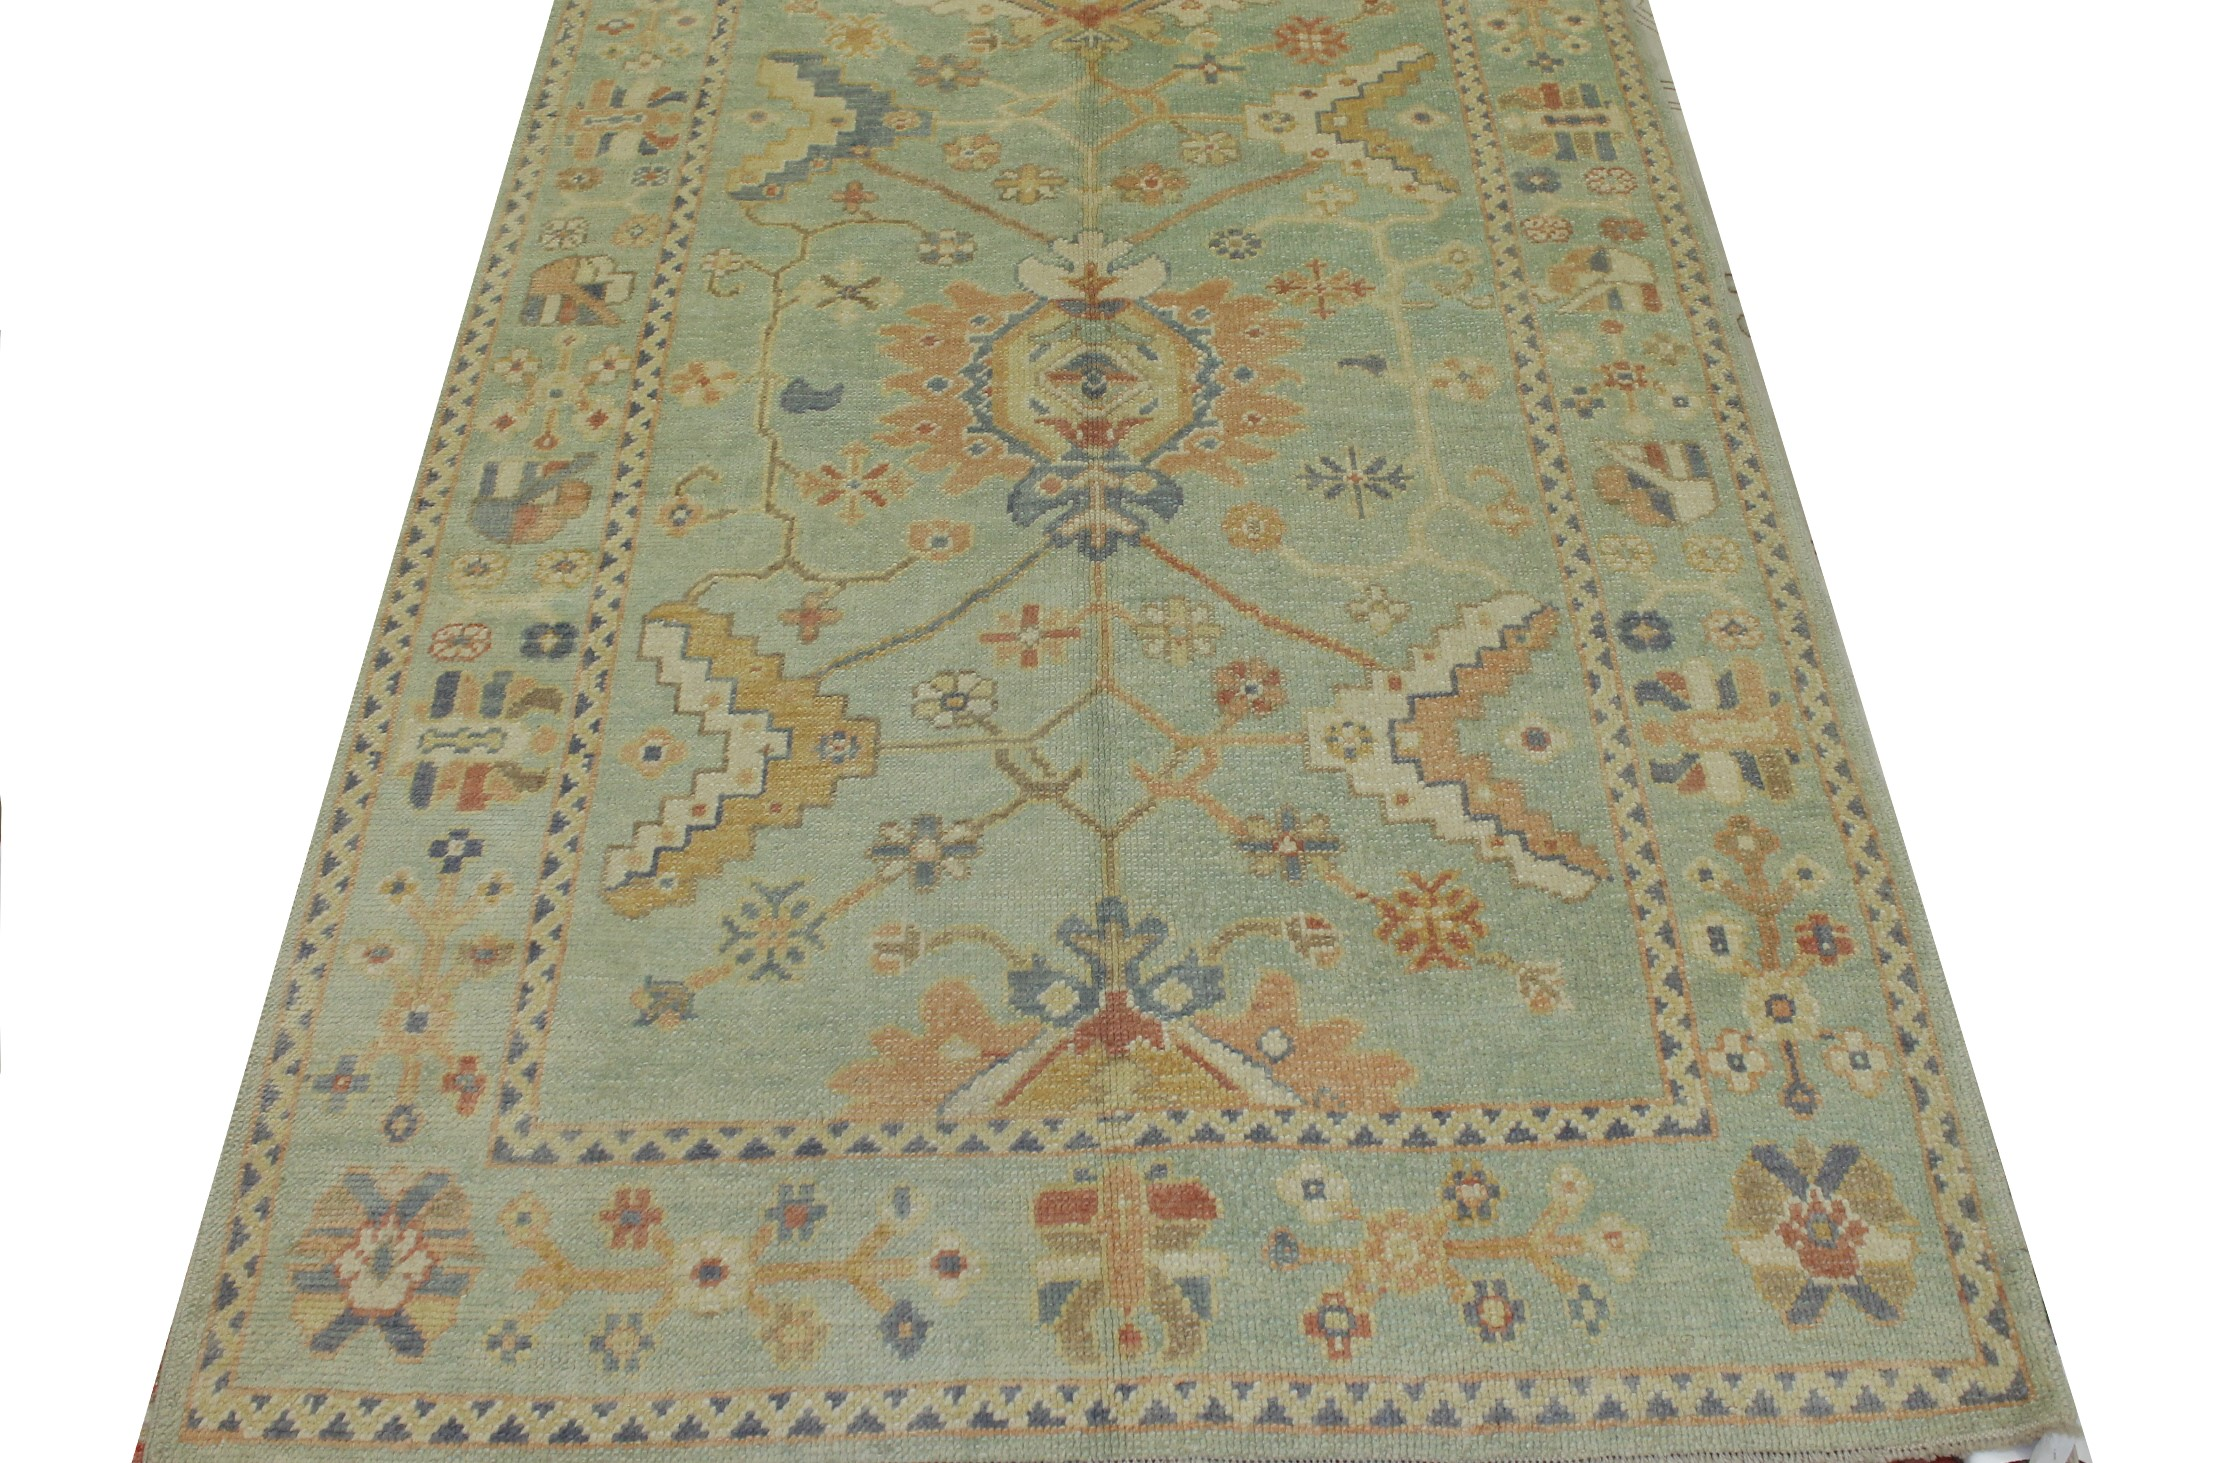 5x7/8 Oushak Hand Knotted Wool Area Rug - MR023448